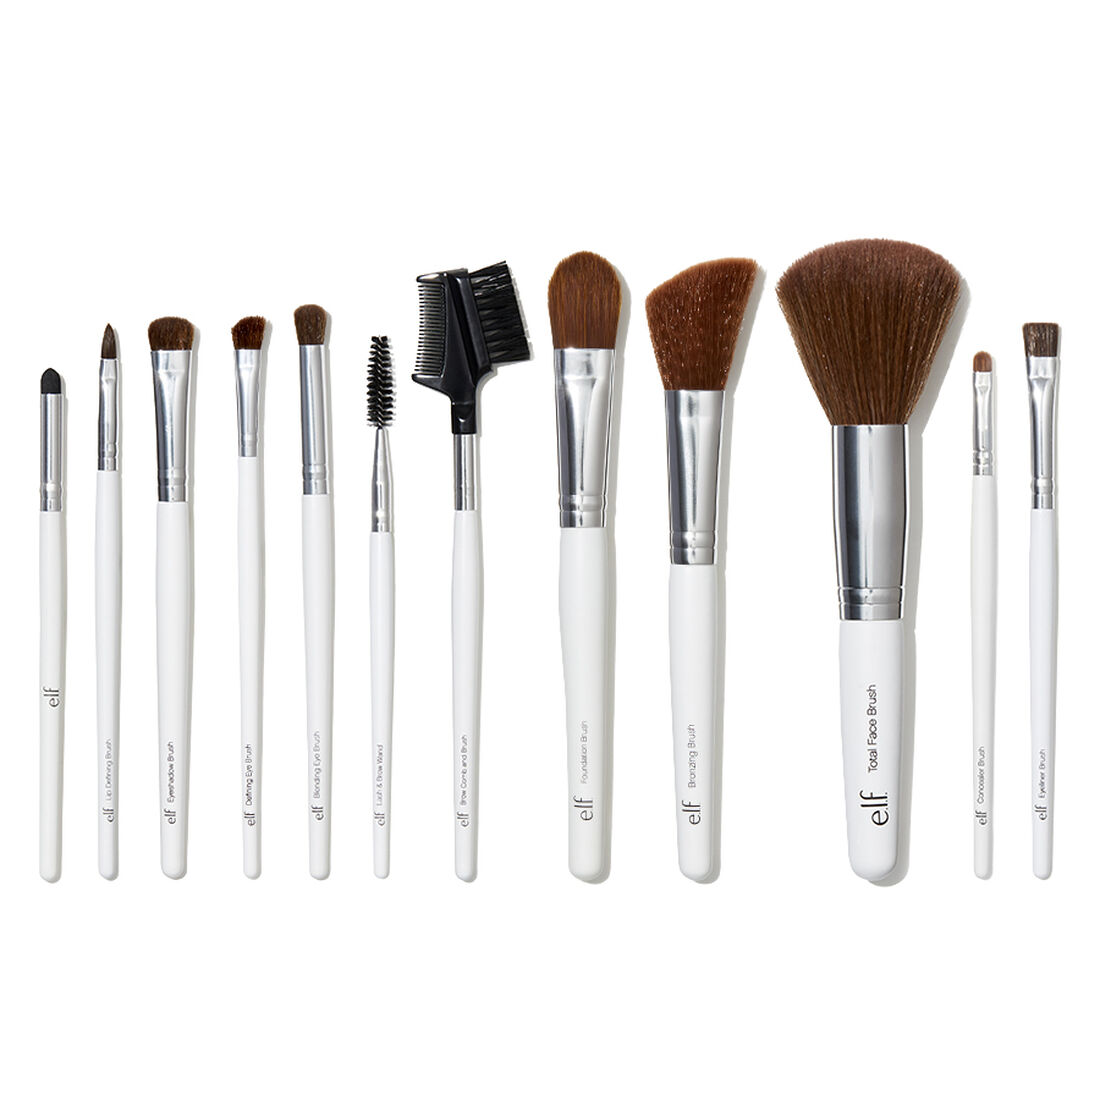 E.l.f. - Professional Set of 12 Brushes